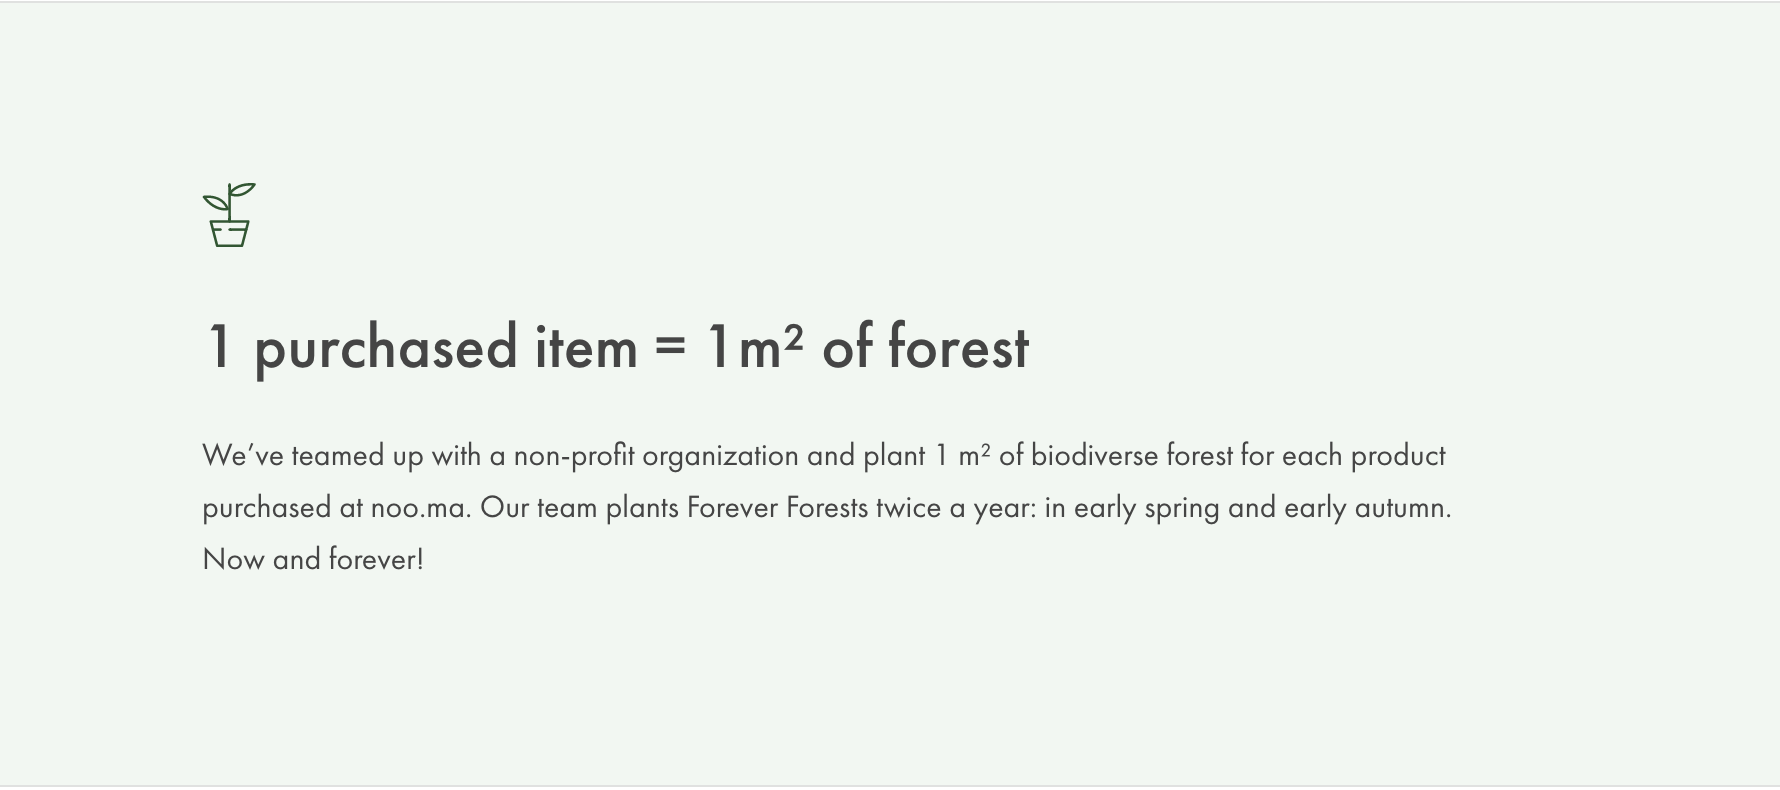 1 purchased item = 1m² of forest We've teamed up with a non-profit organization and plant 1 m² of biodiverse forest for each product purchased at noo.ma. Our team plants Forever Forests twice a year: in early spring and early autumn. Now and forever!